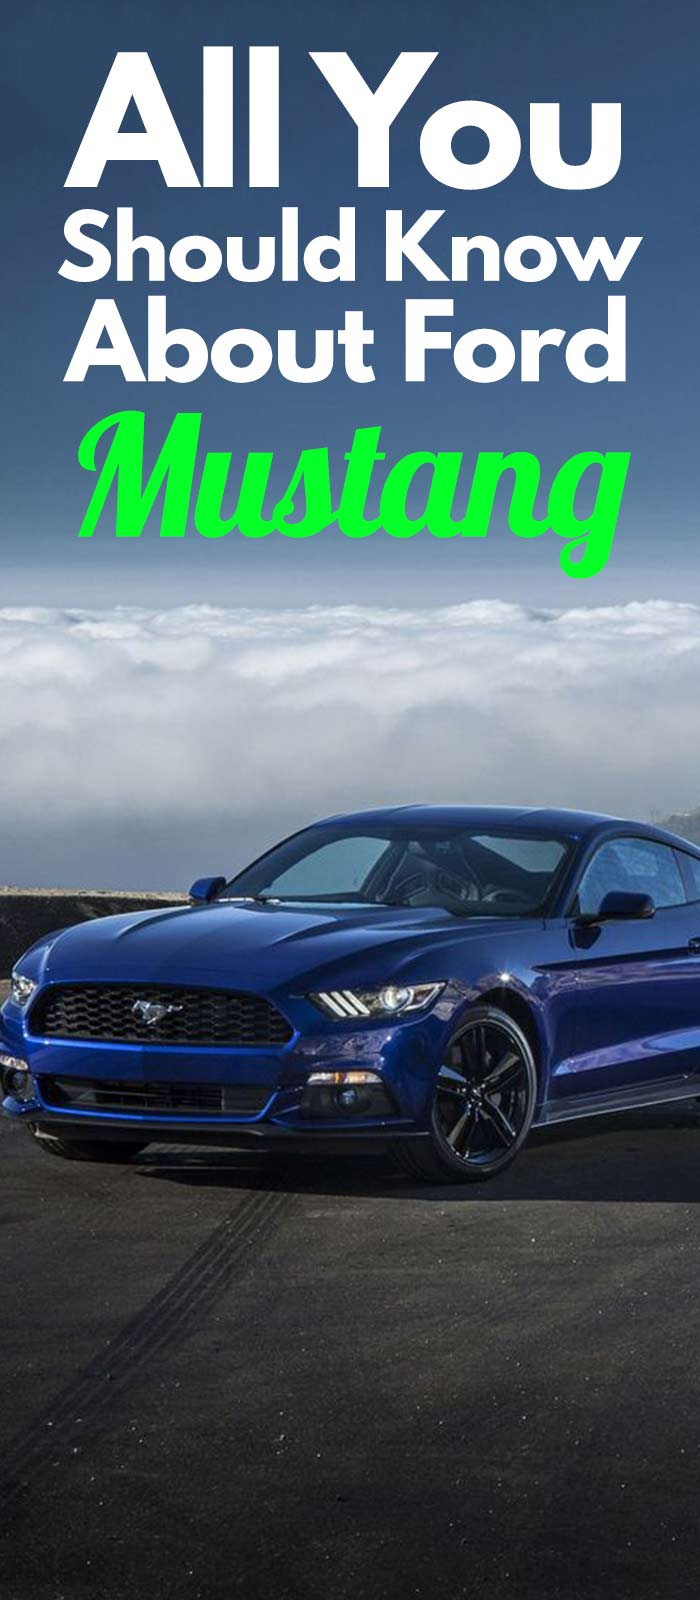 All You Should Know About Ford MUSTANG.